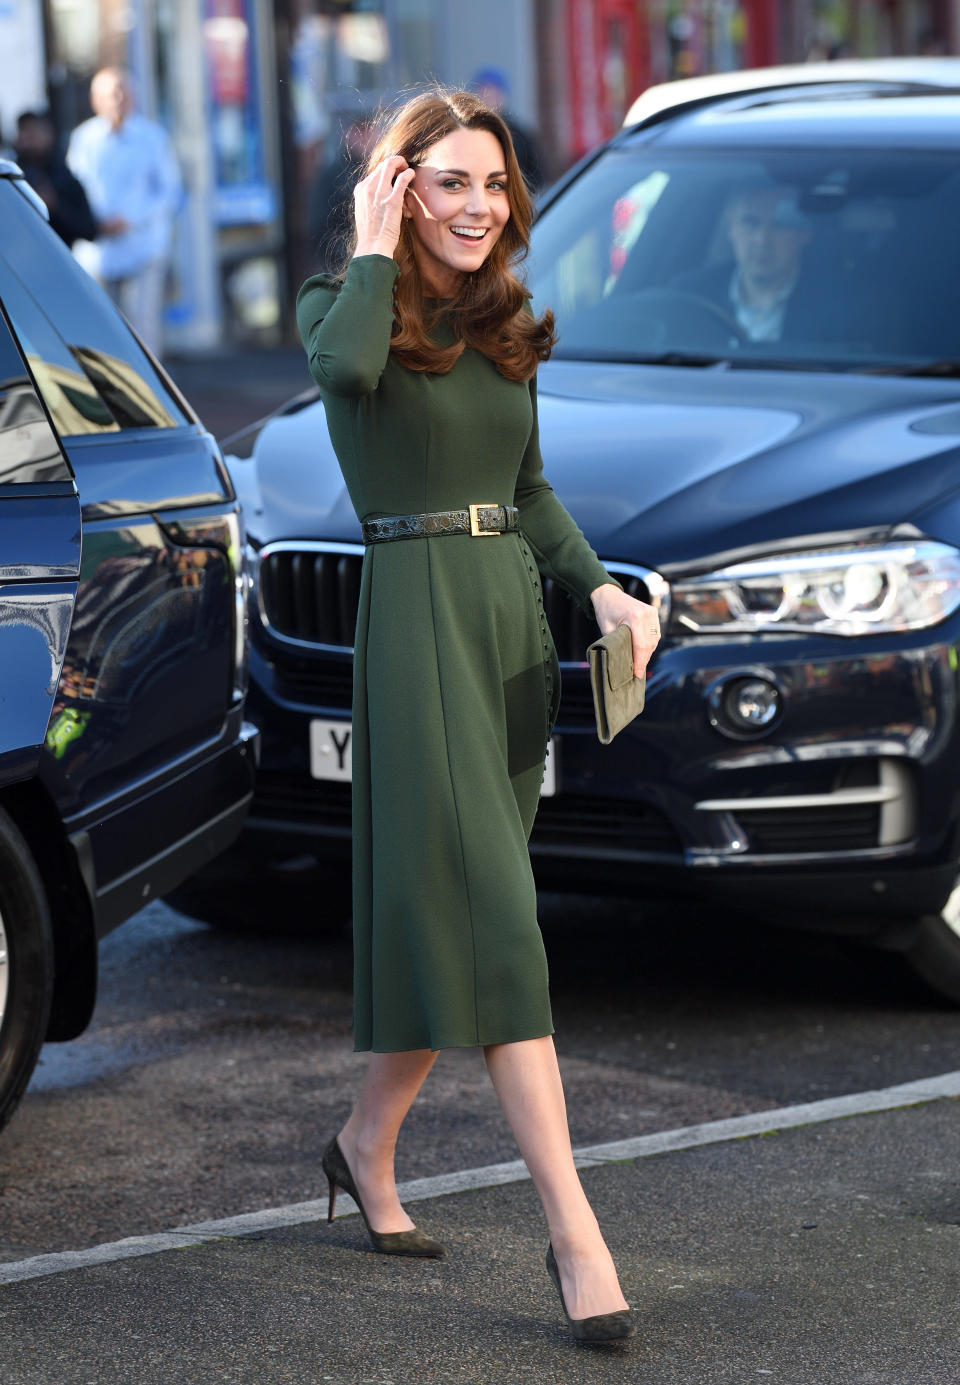 To visit Family Action's Lewisham base in South London, the mother-of-three wore a £550 Beulah dress with a matching £119 LK Bennett clutch and suede heels by Gianvito Rossi. [Photo: Getty]